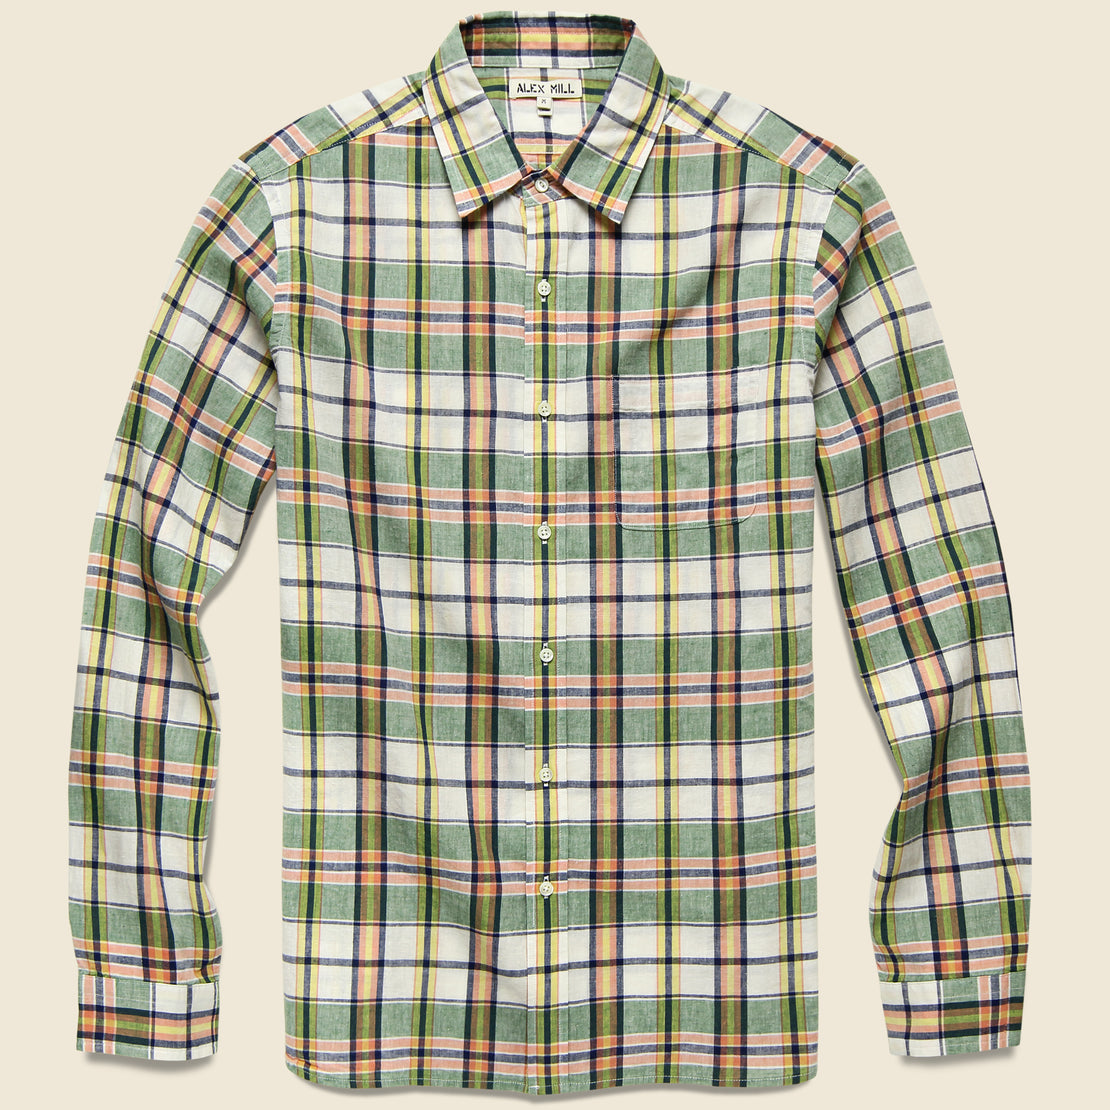 Alex Mill Spring Shirt - Green/Off-White